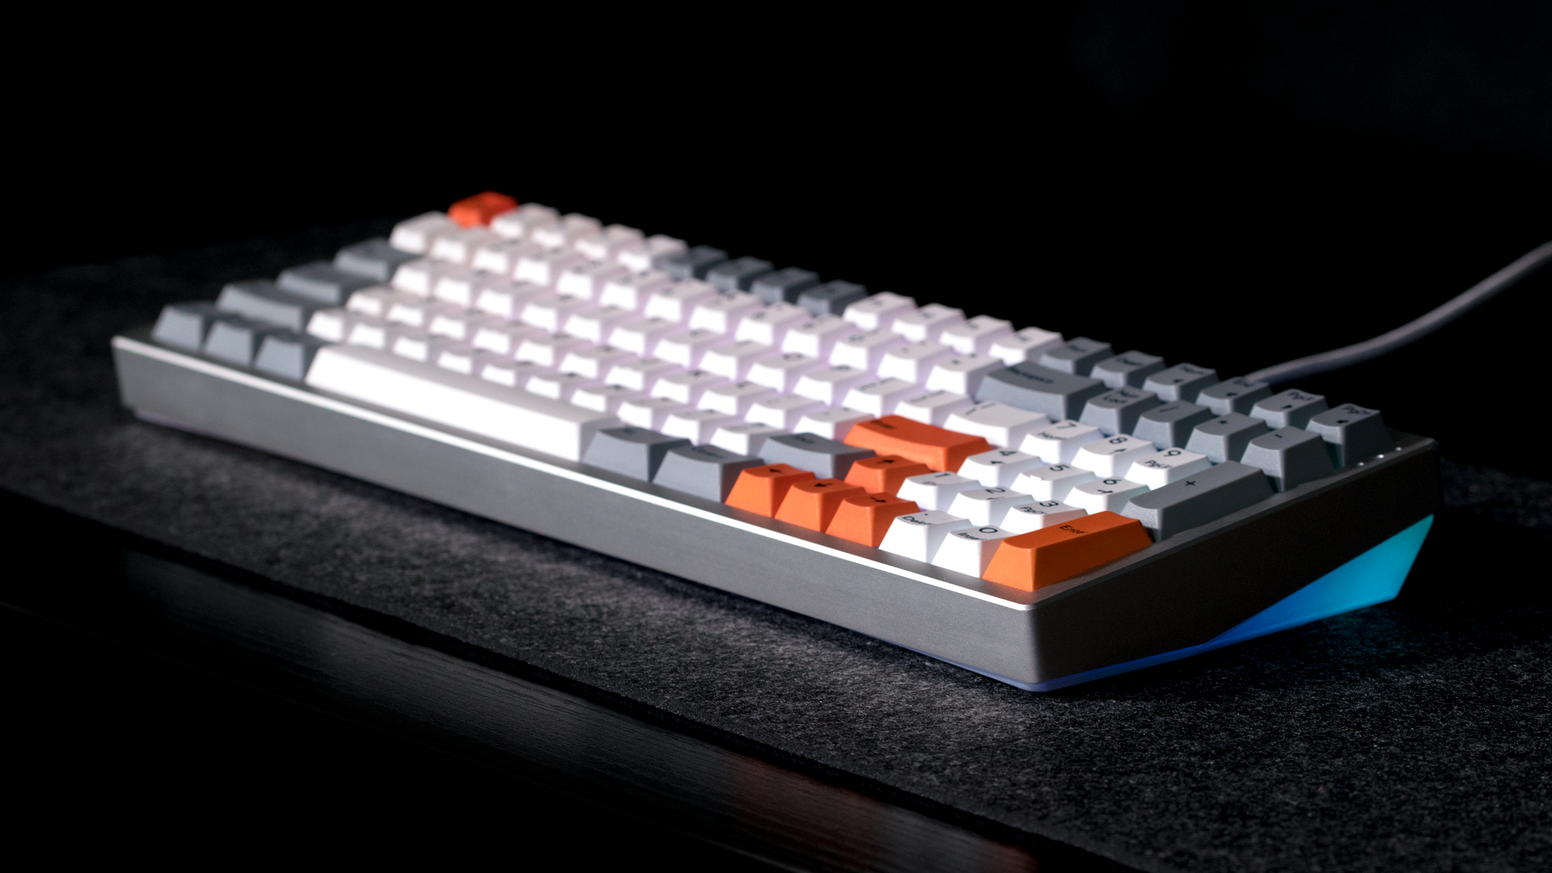 Kira - a compact, full-size mechanical keyboard built without compromise. Designed by Angelo Tobias and the team at Input Club.